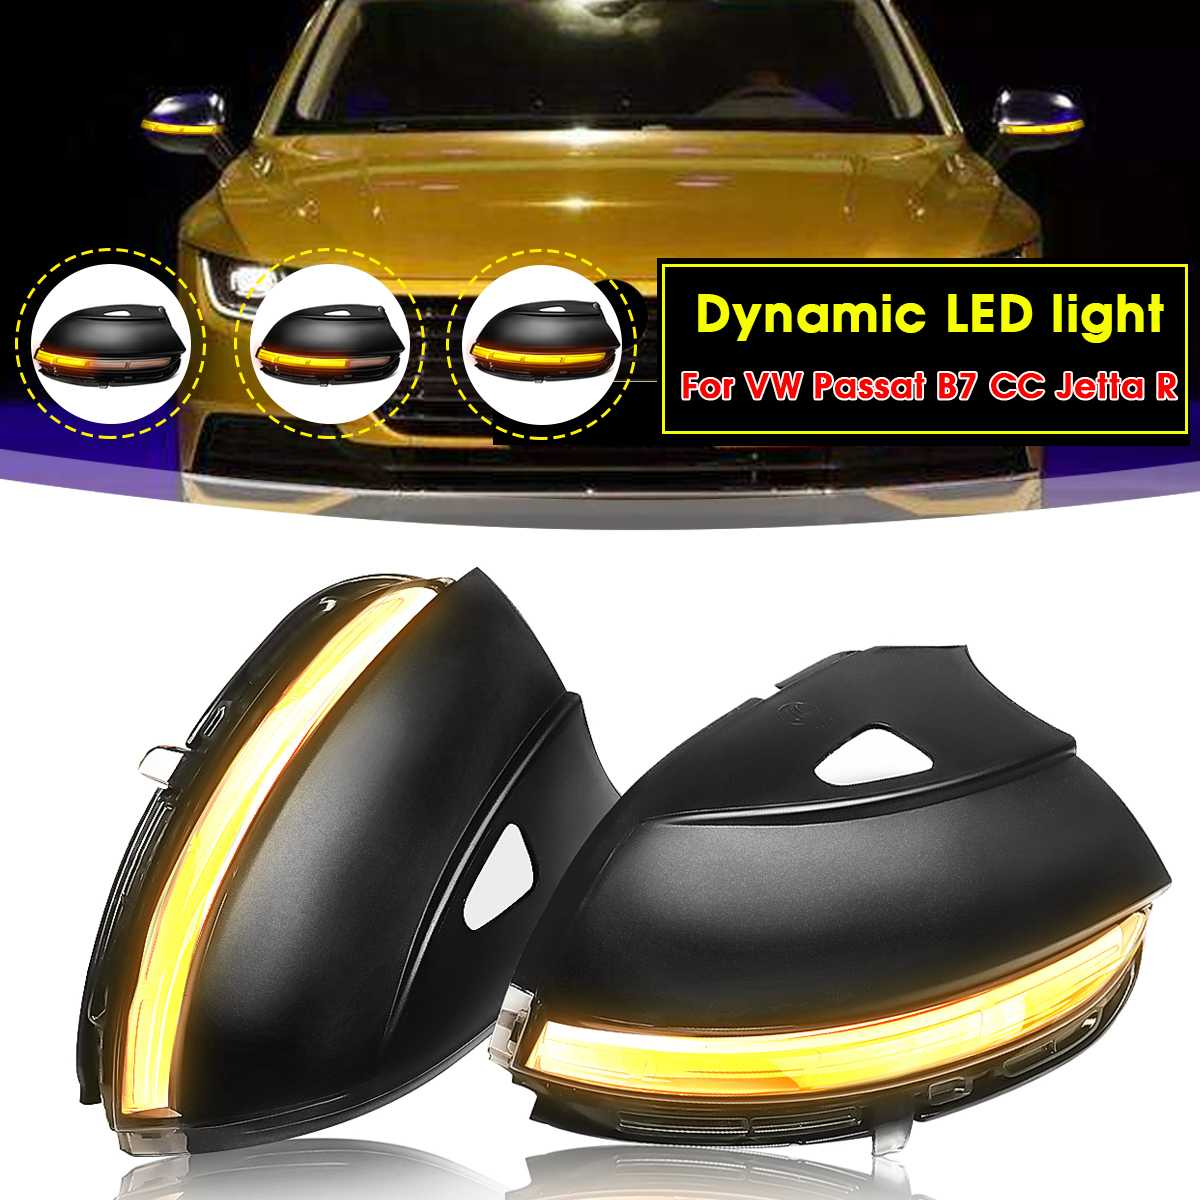 2pcs/set Dynamic Mirror Indicator Blinker LED Turn Light Side Mirror Flowing Signal Light for VW for Passat B7 CC for Jetta R2pcs/set Dynamic Mirror Indicator Blinker LED Turn Light Side Mirror Flowing Signal Light for VW for Passat B7 CC for Jetta R